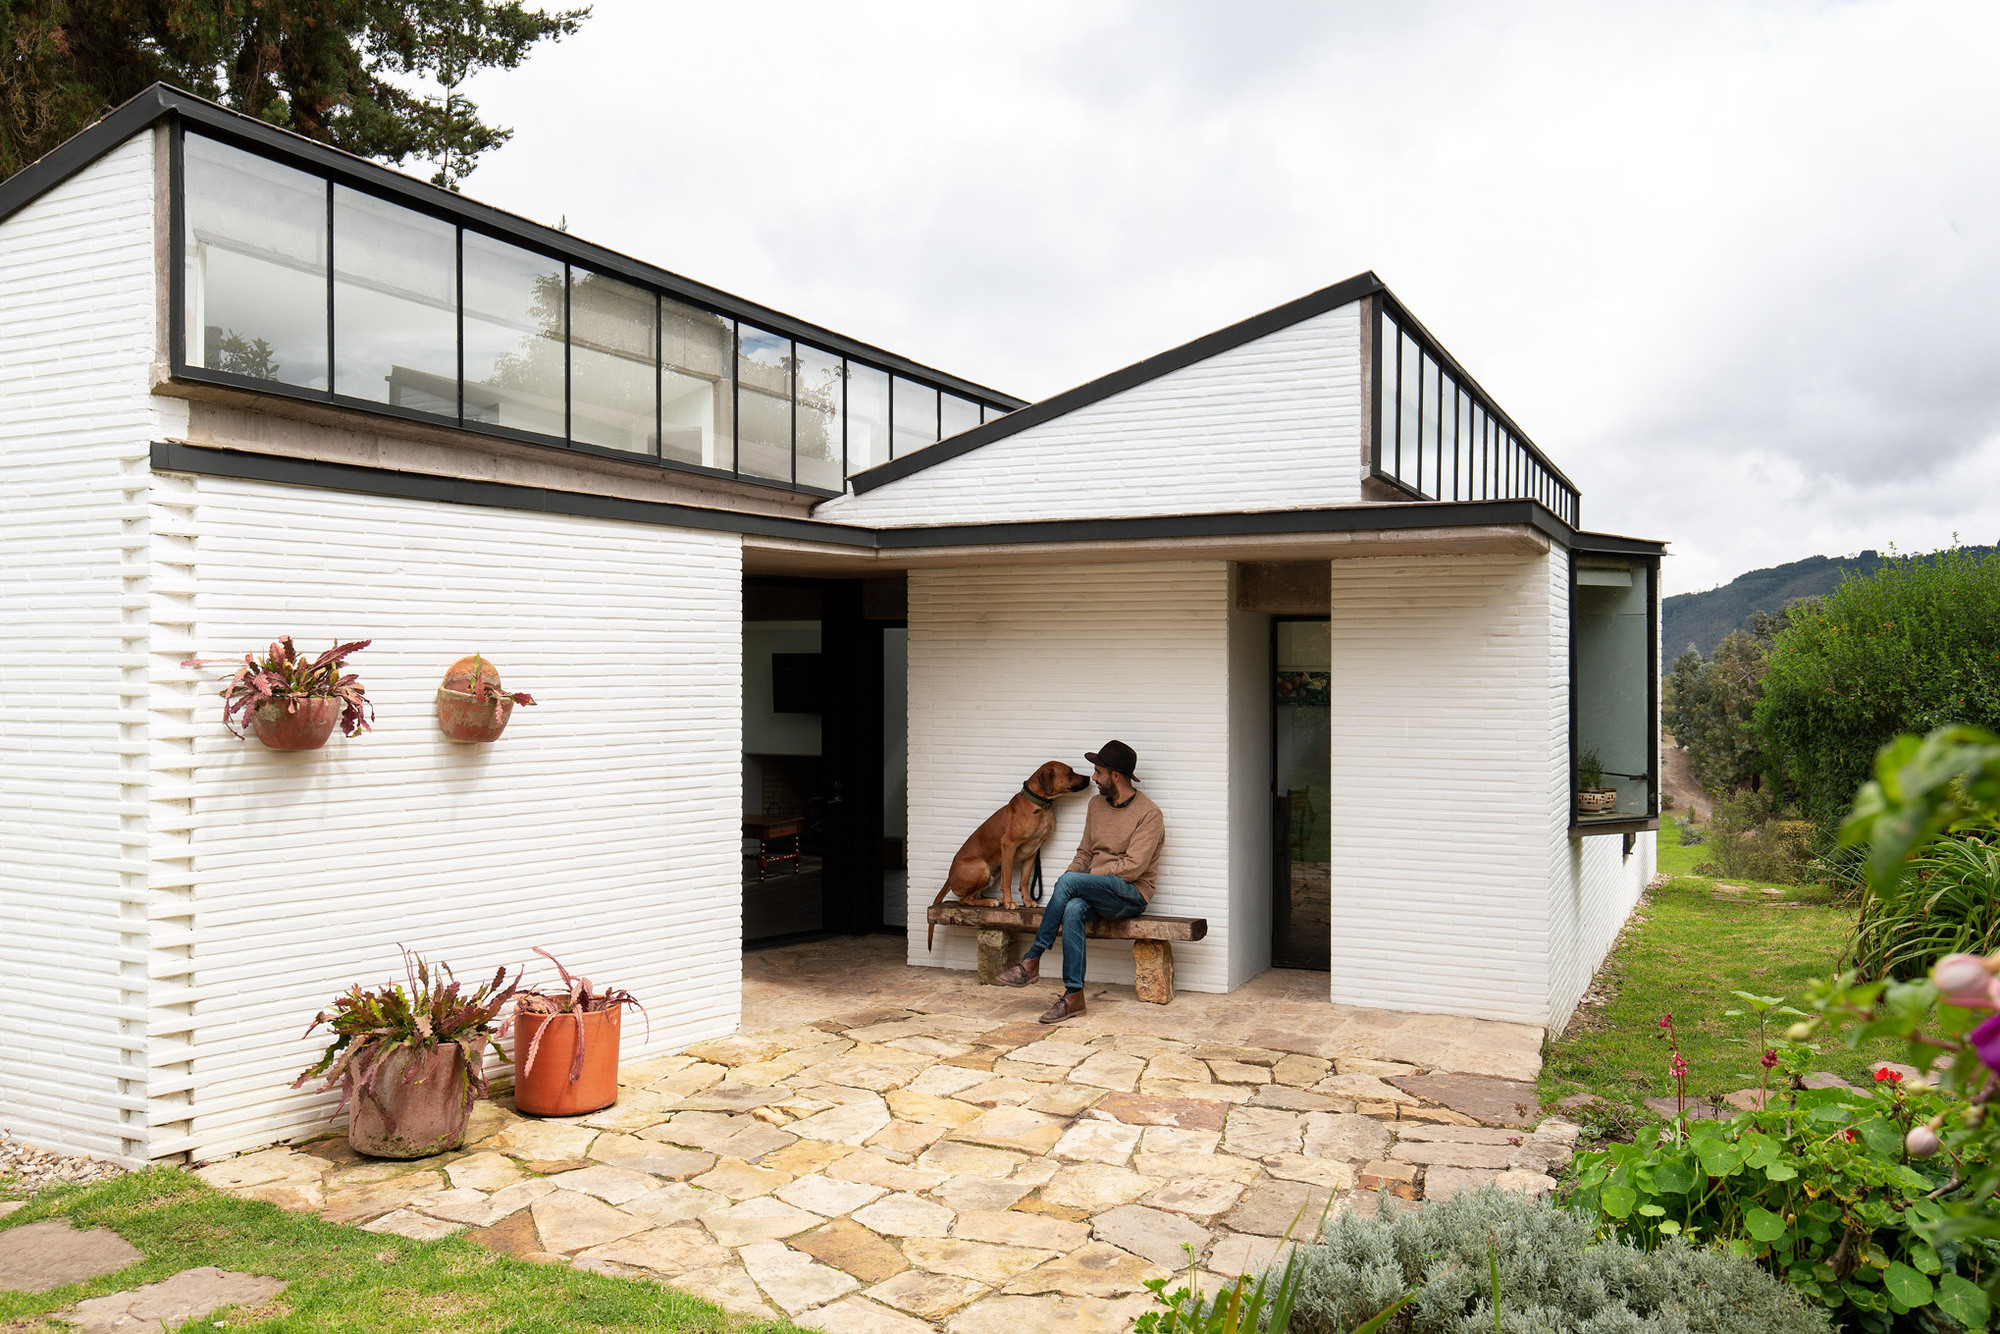 The Keeper's House / L.Oberlaender Arquitectos